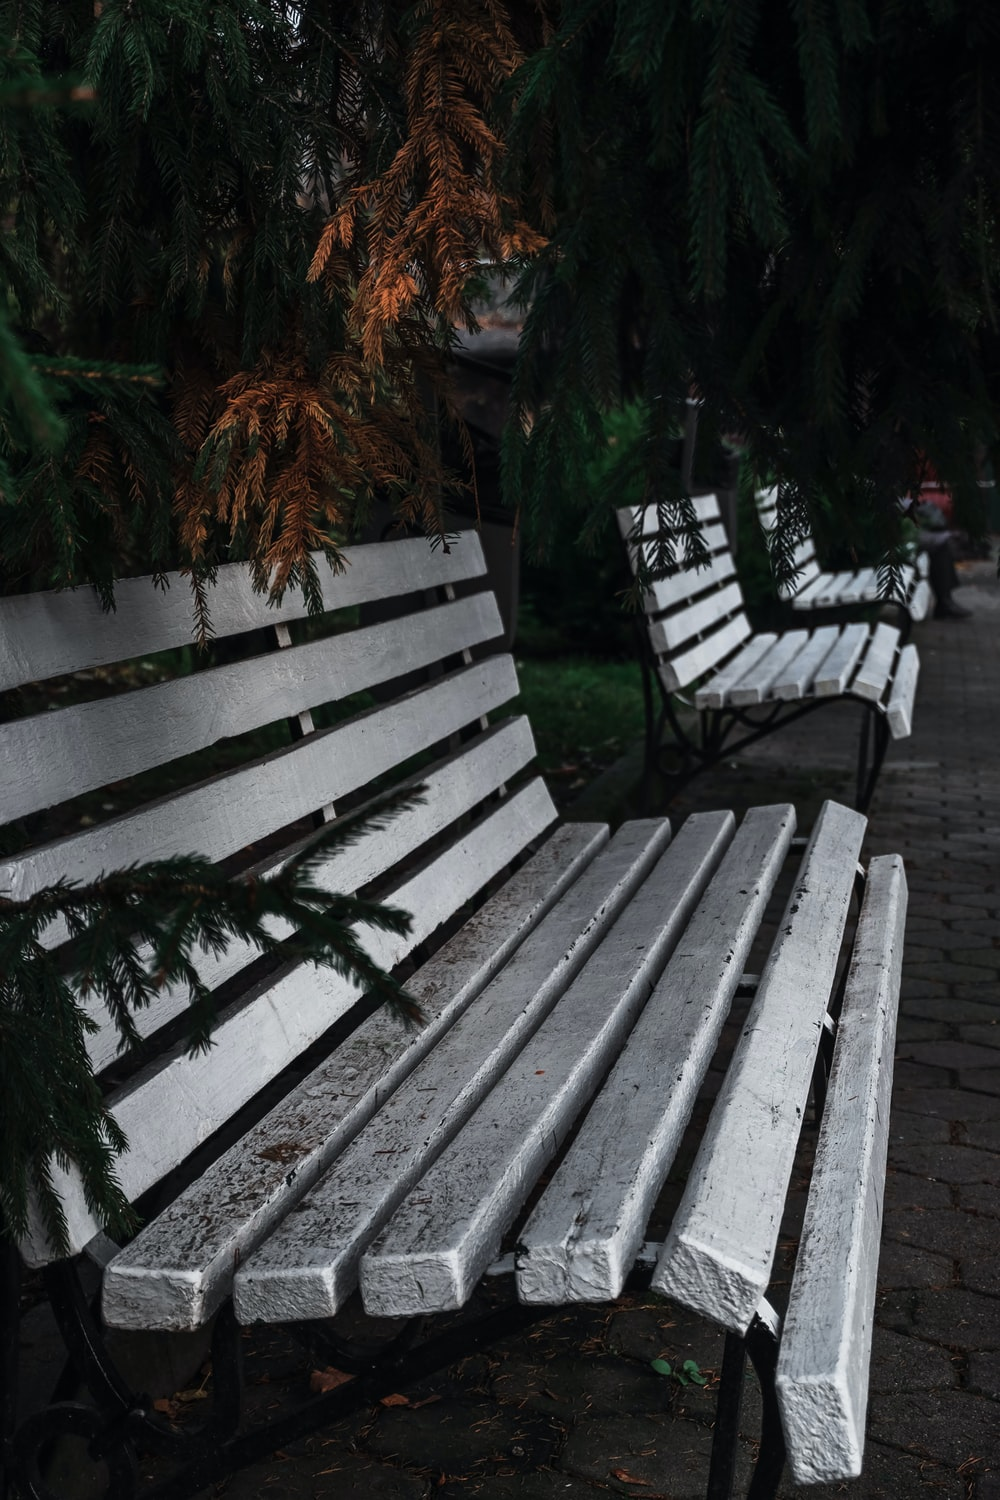 brown wooden bench near green plants during daytime